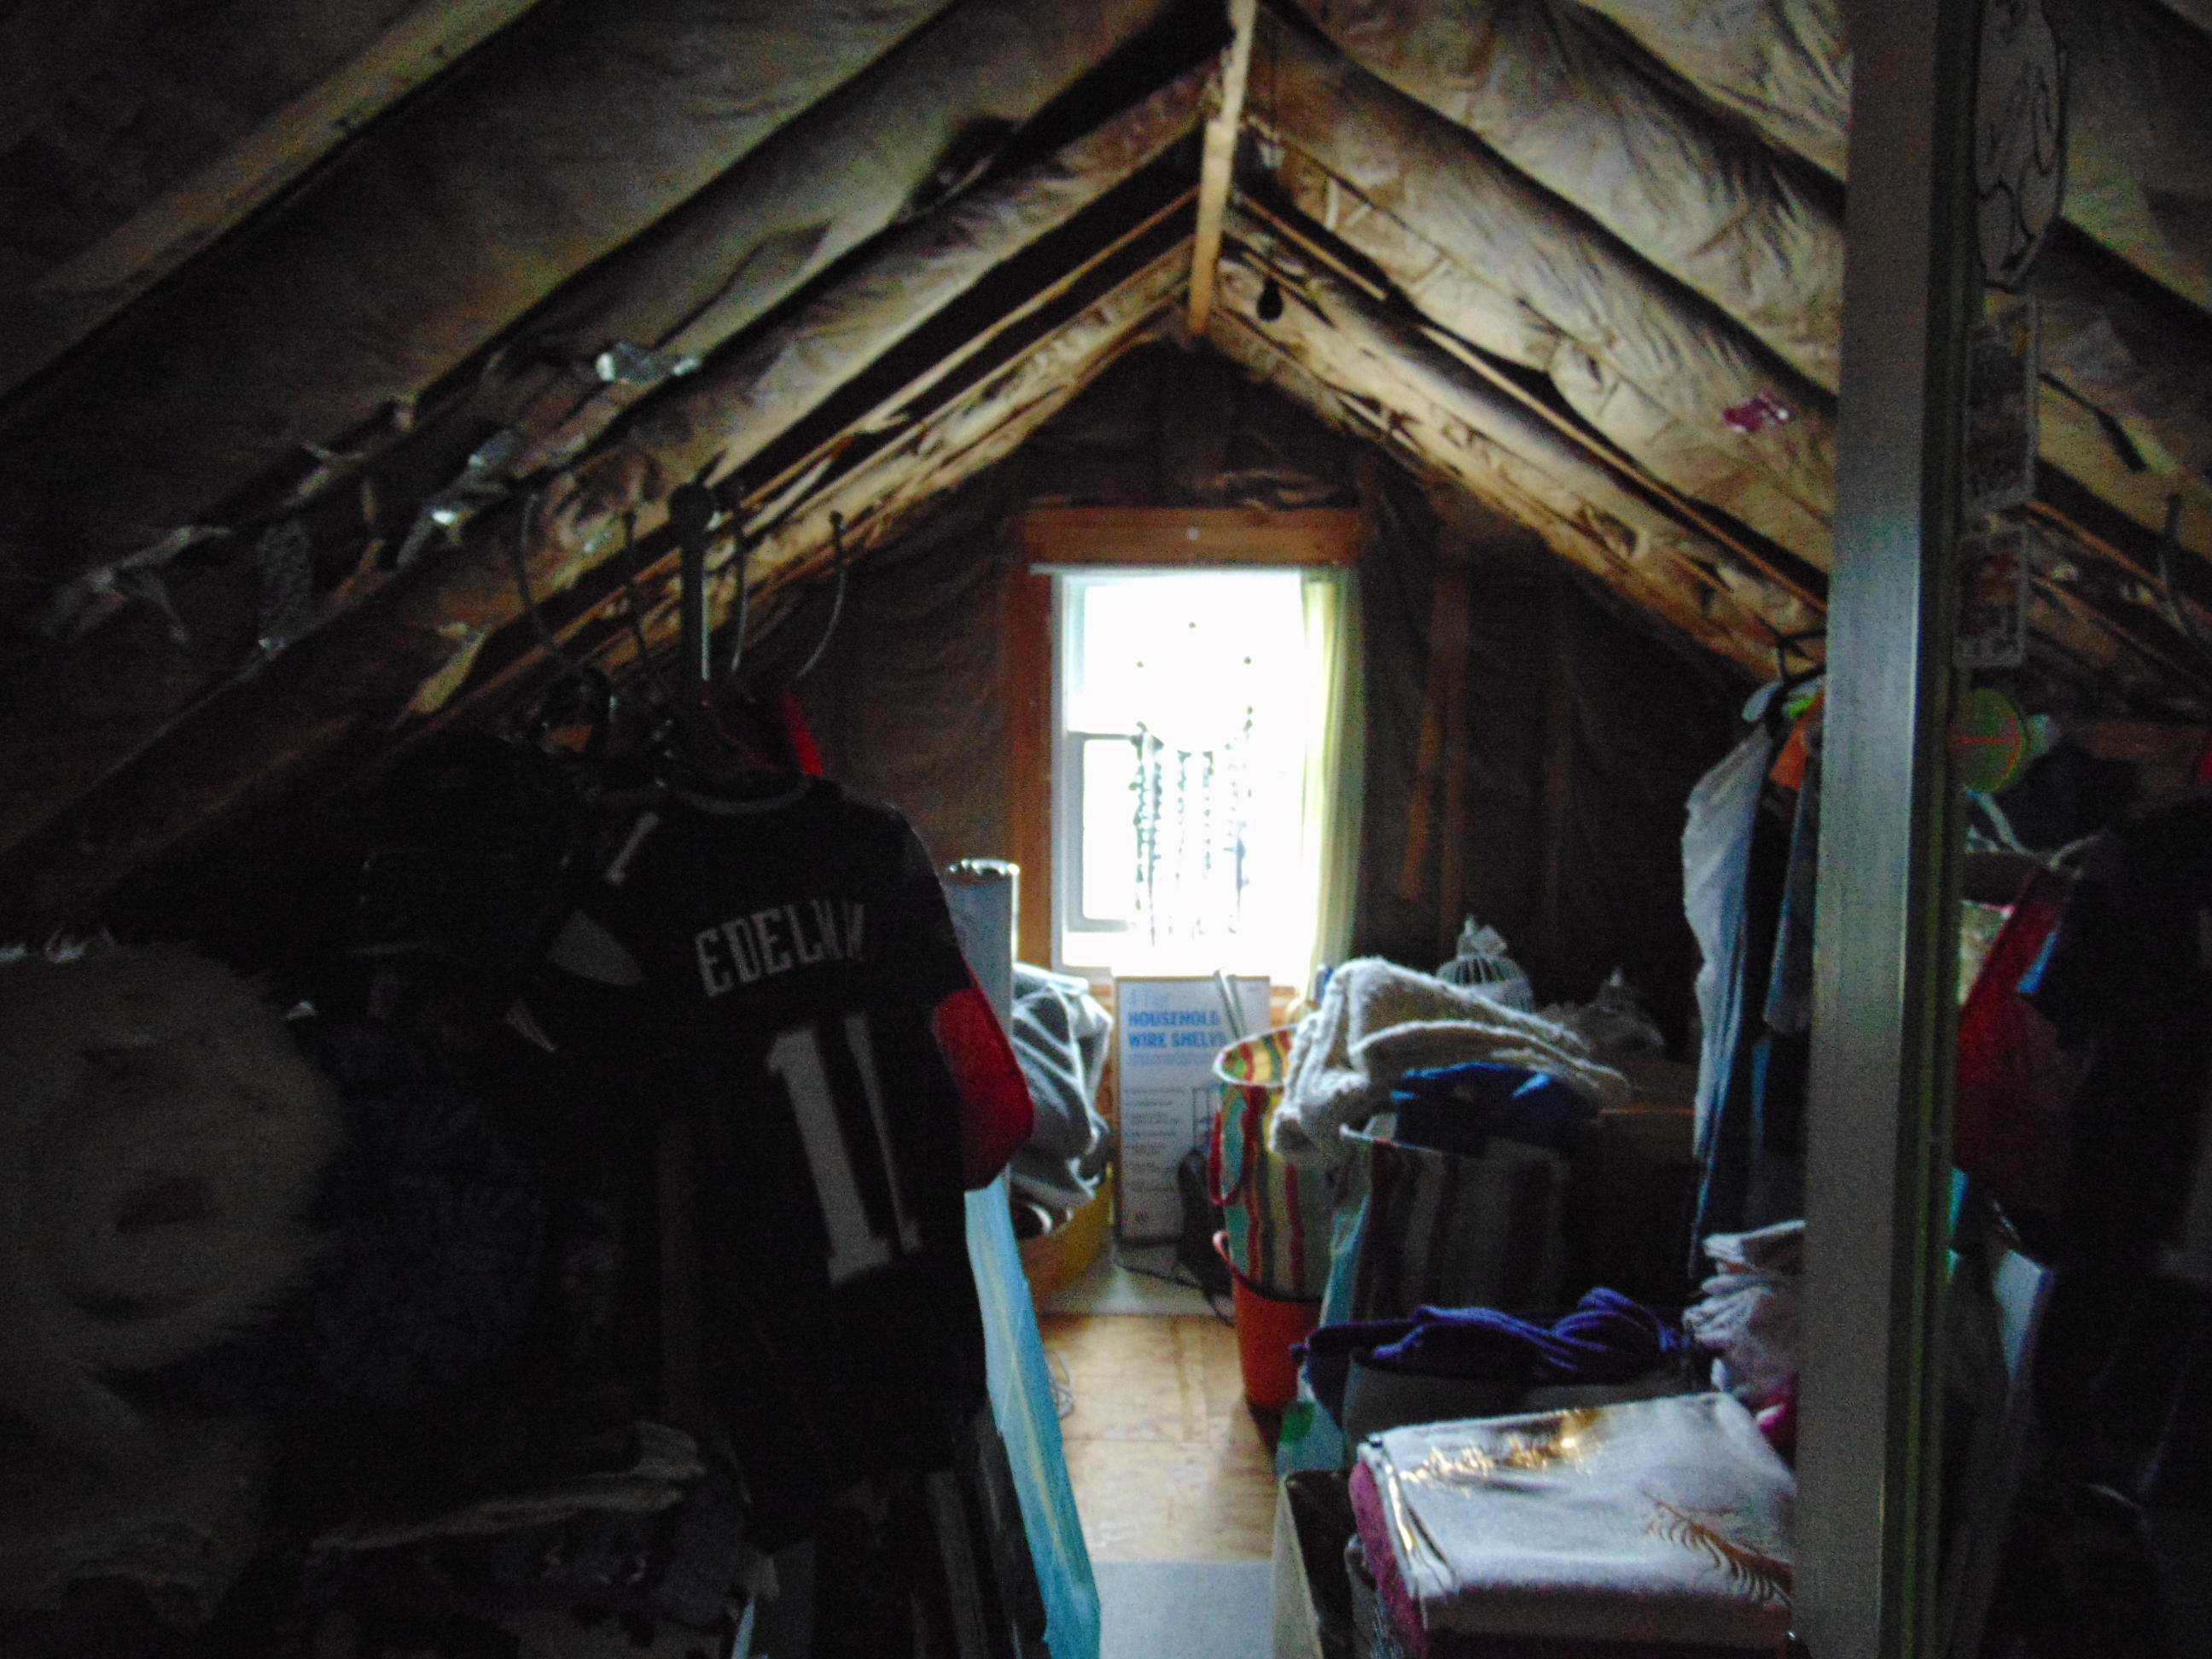 8 Cheney Road, Orleans, MA photo 14